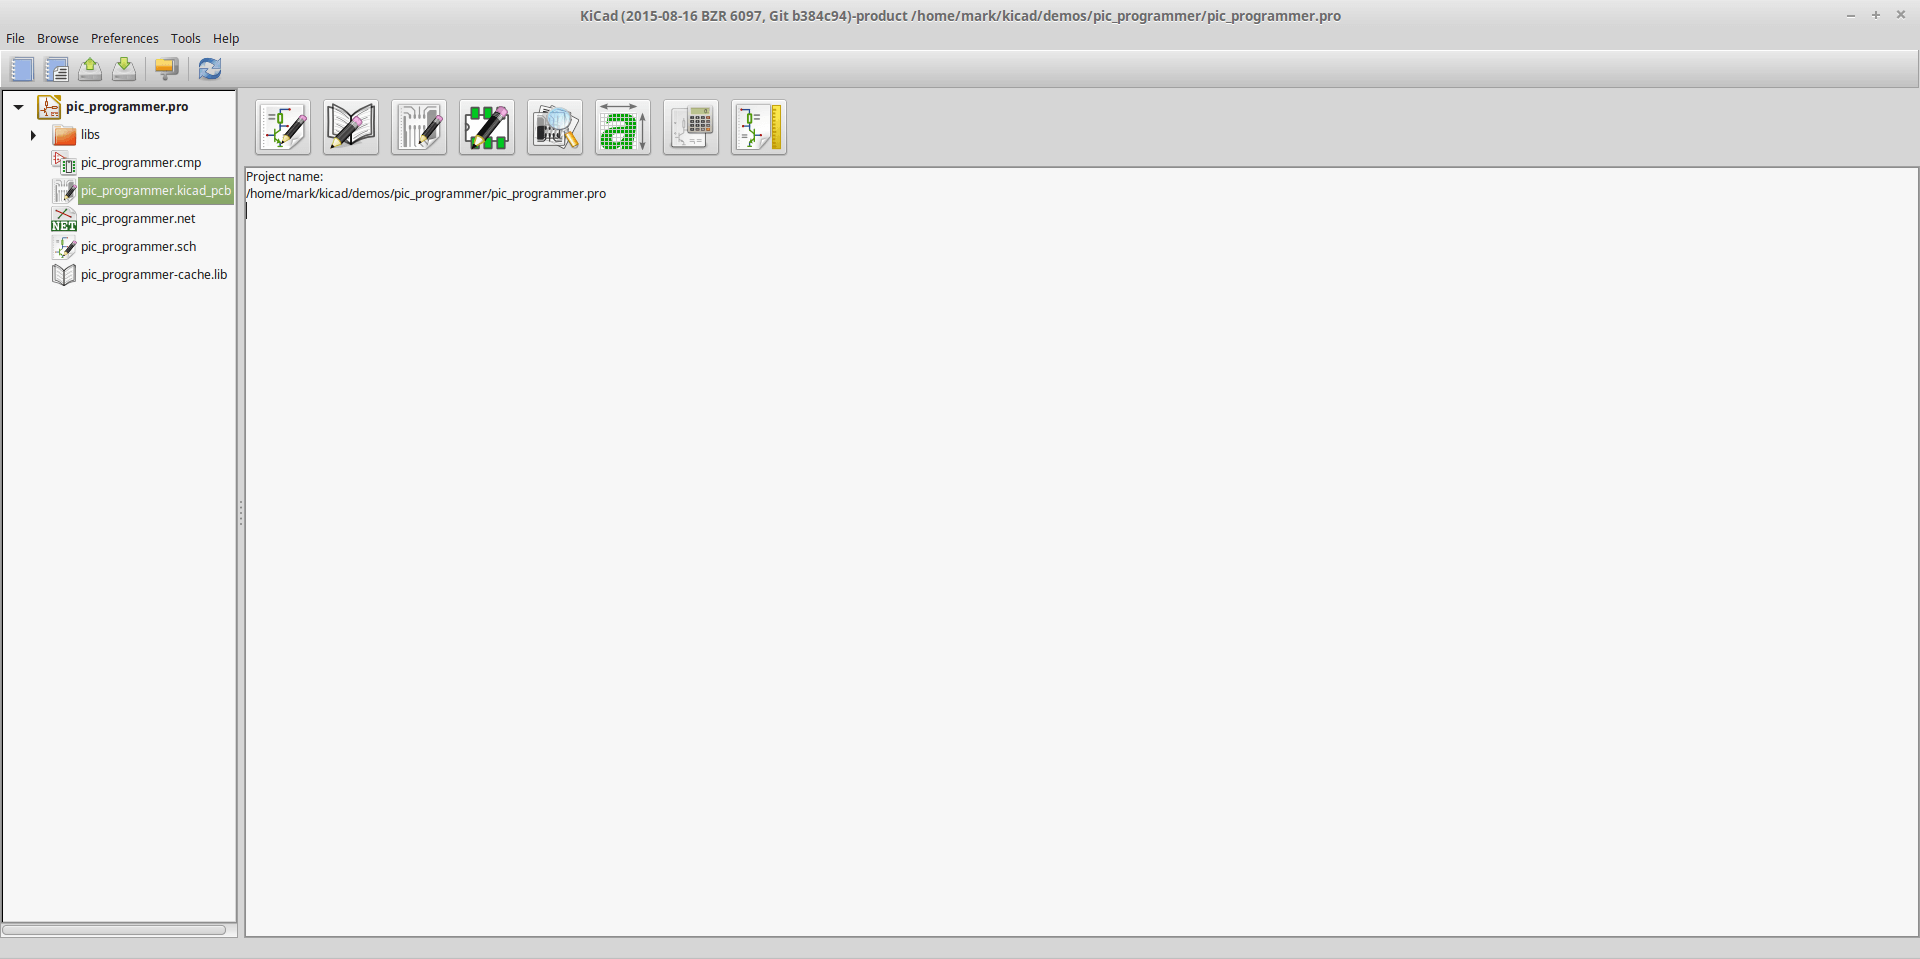 Screenshot showing KiCad on Linux Mint for comparison